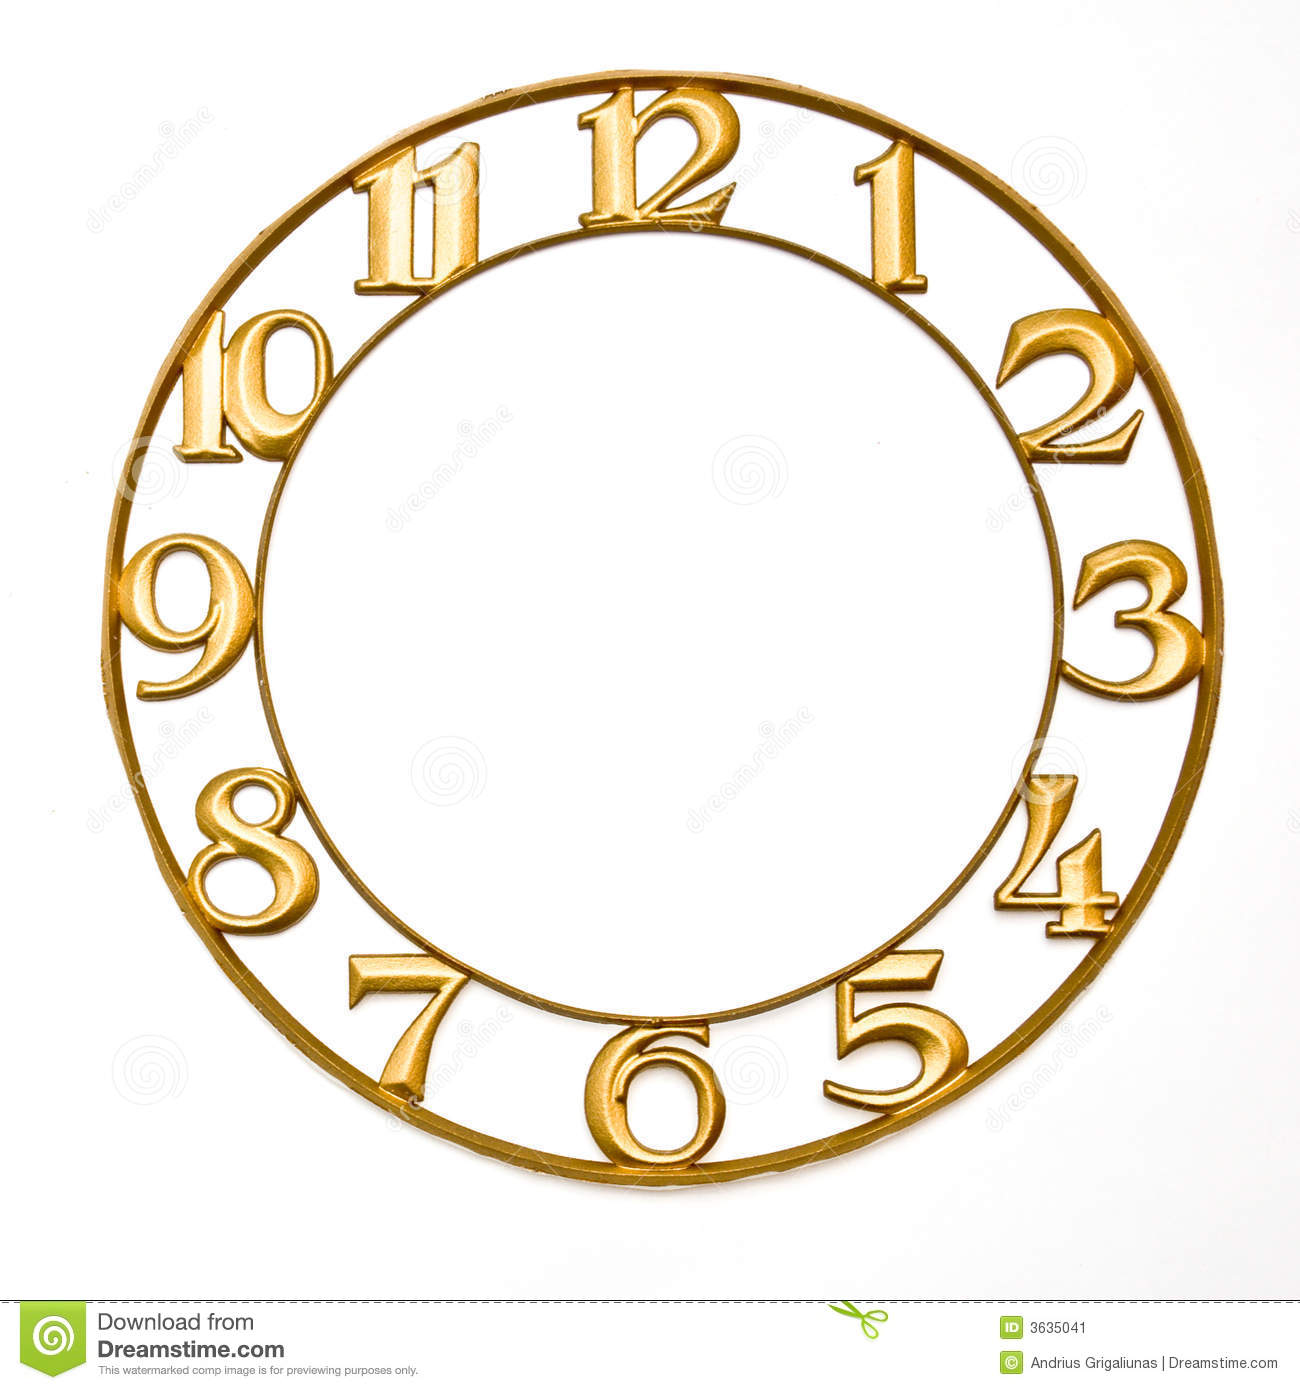 Clock-face, without hands on white background.